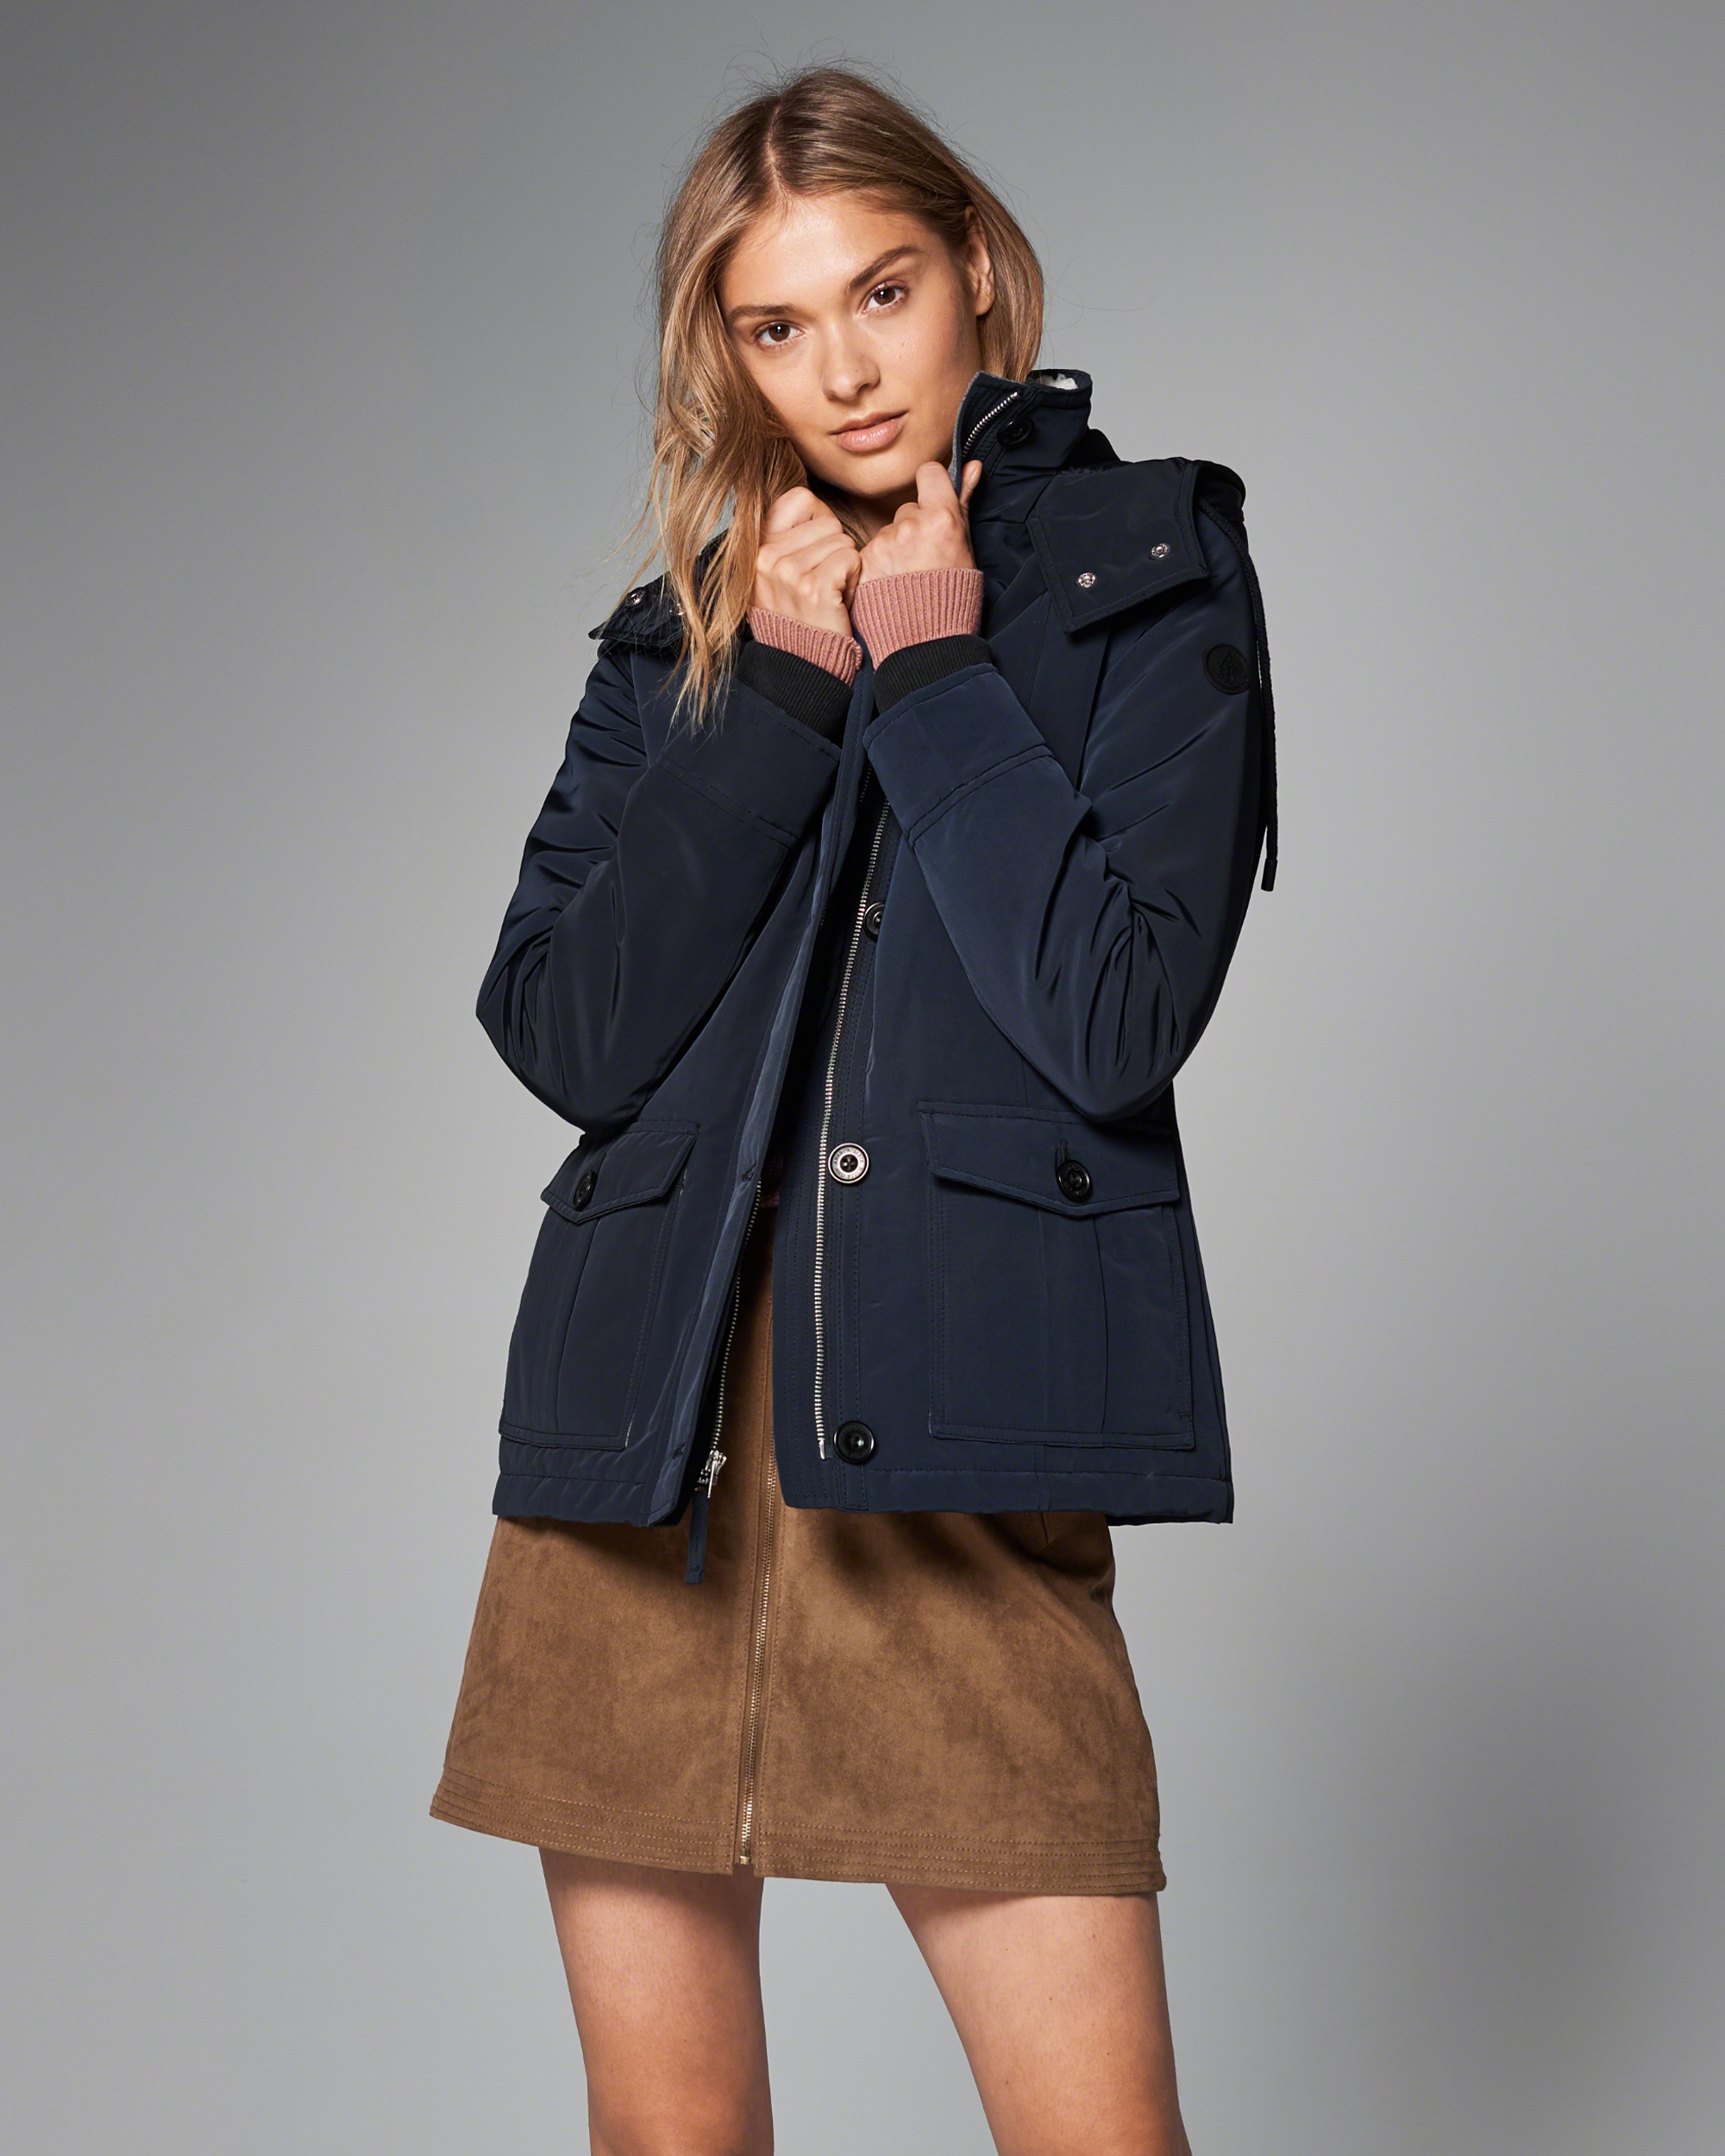 Abercrombie Fitch Accessories Abercrombie Fitch Womens: Abercrombie & Fitch Hard Shell Performance Jacket In Blue